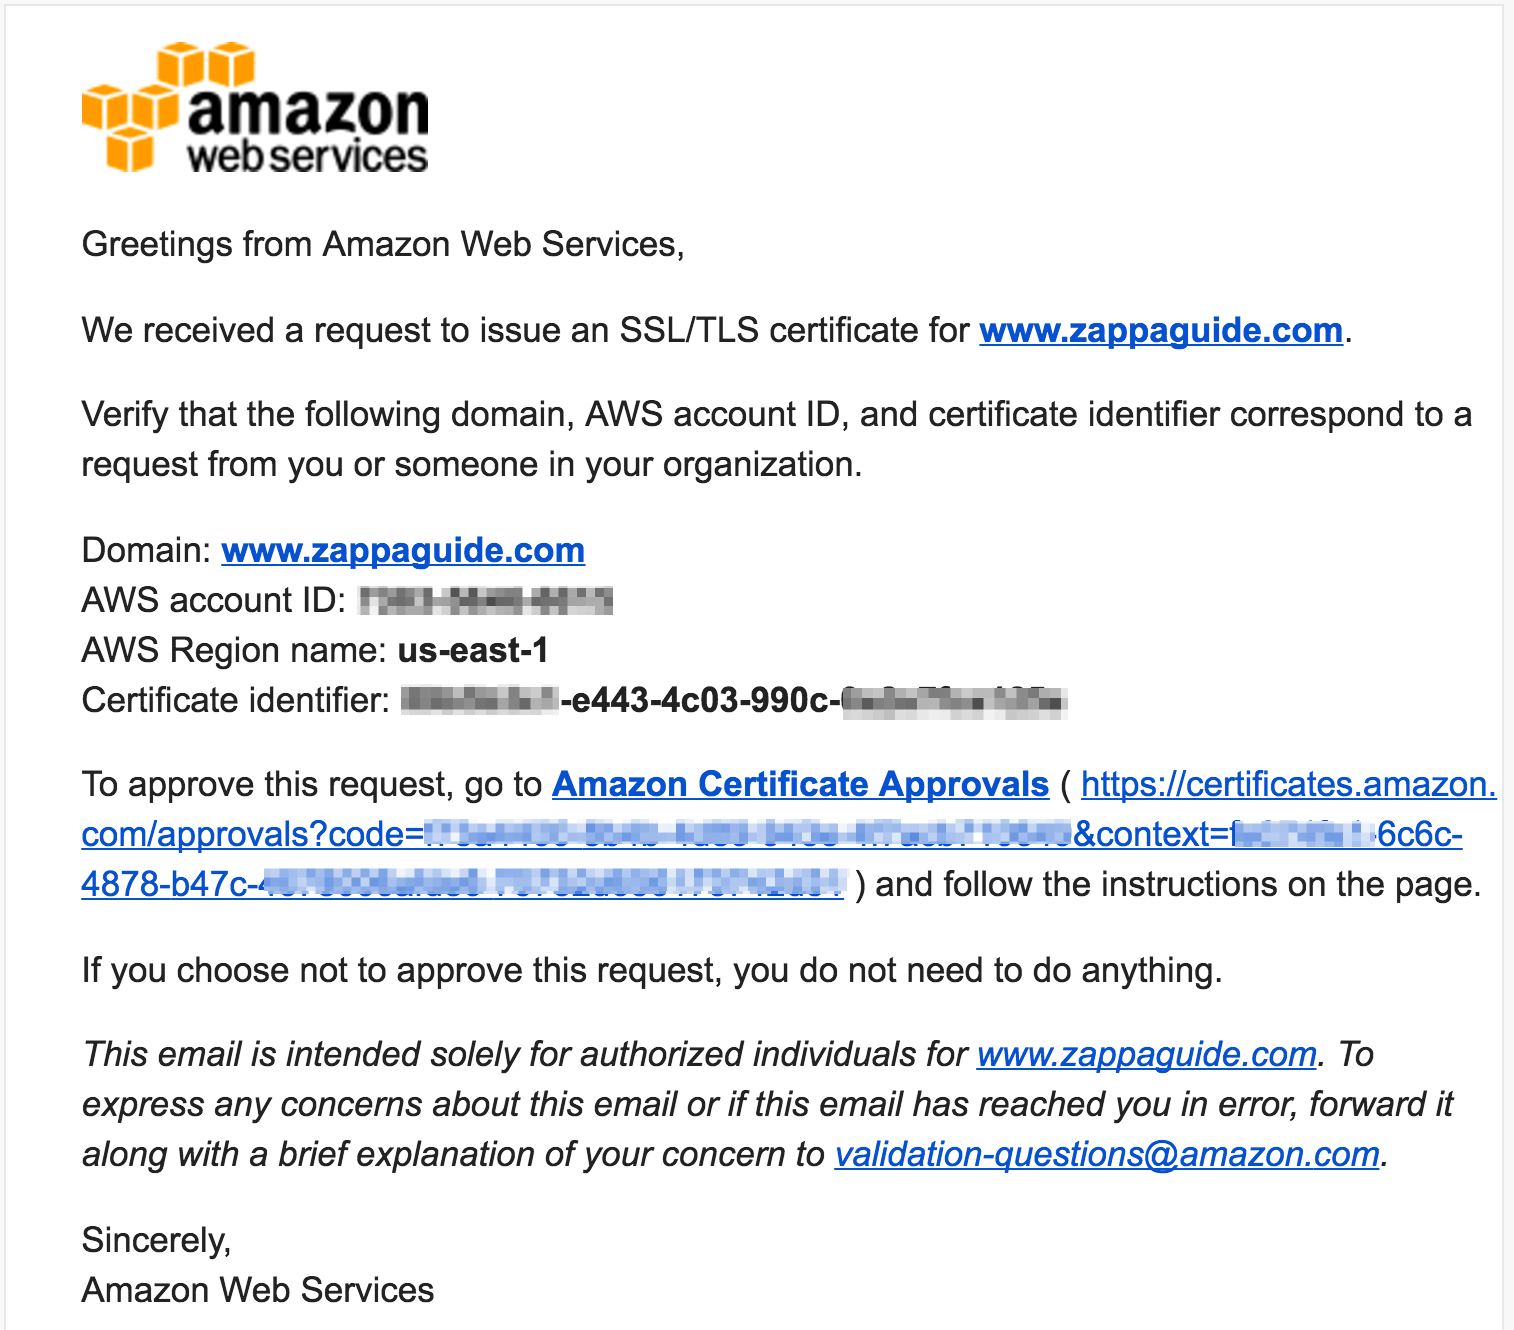 AWS Certificate Manager (ACM) - Guide to using Django with Zappa